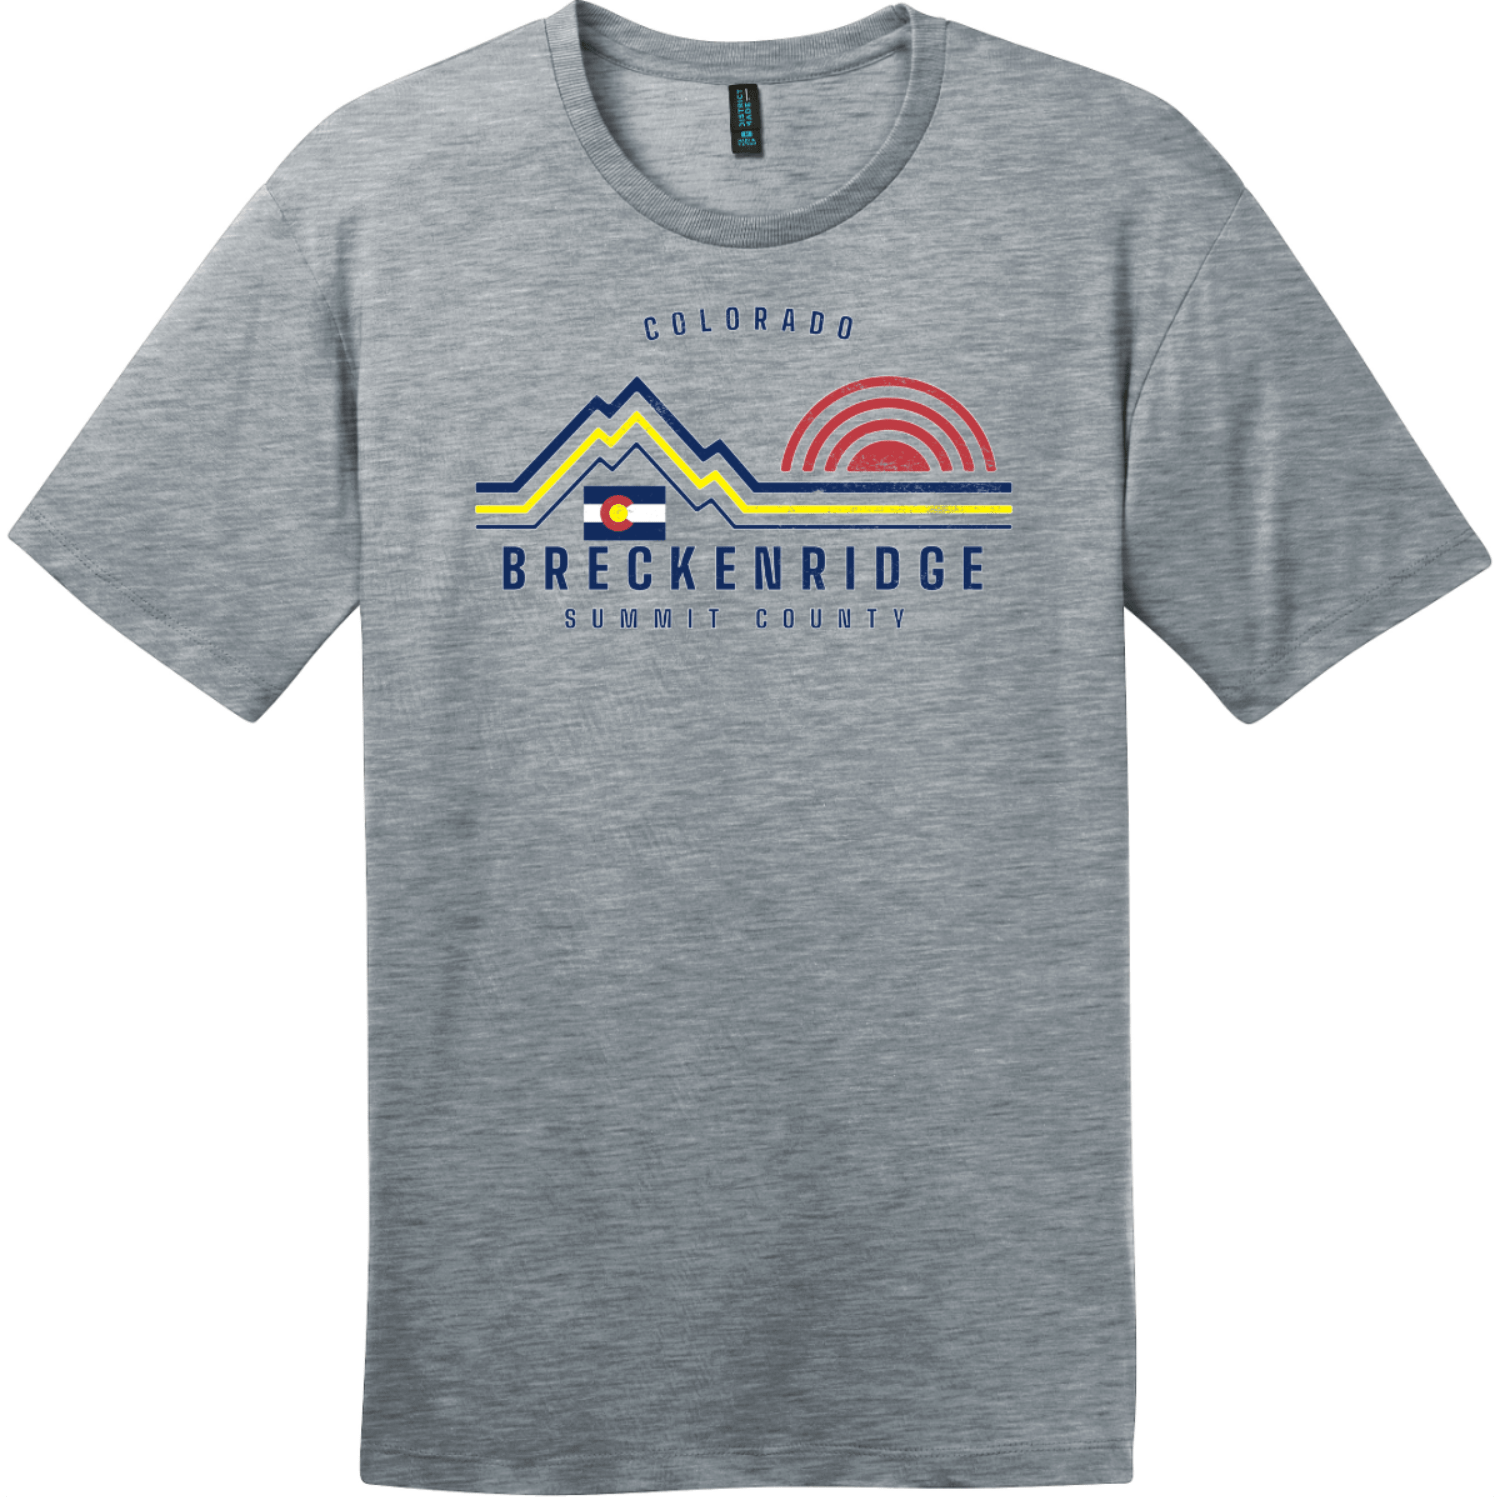 Breckenridge Mountain Summit County T-Shirt Heathered Steel District Perfect Weight Tee DT104